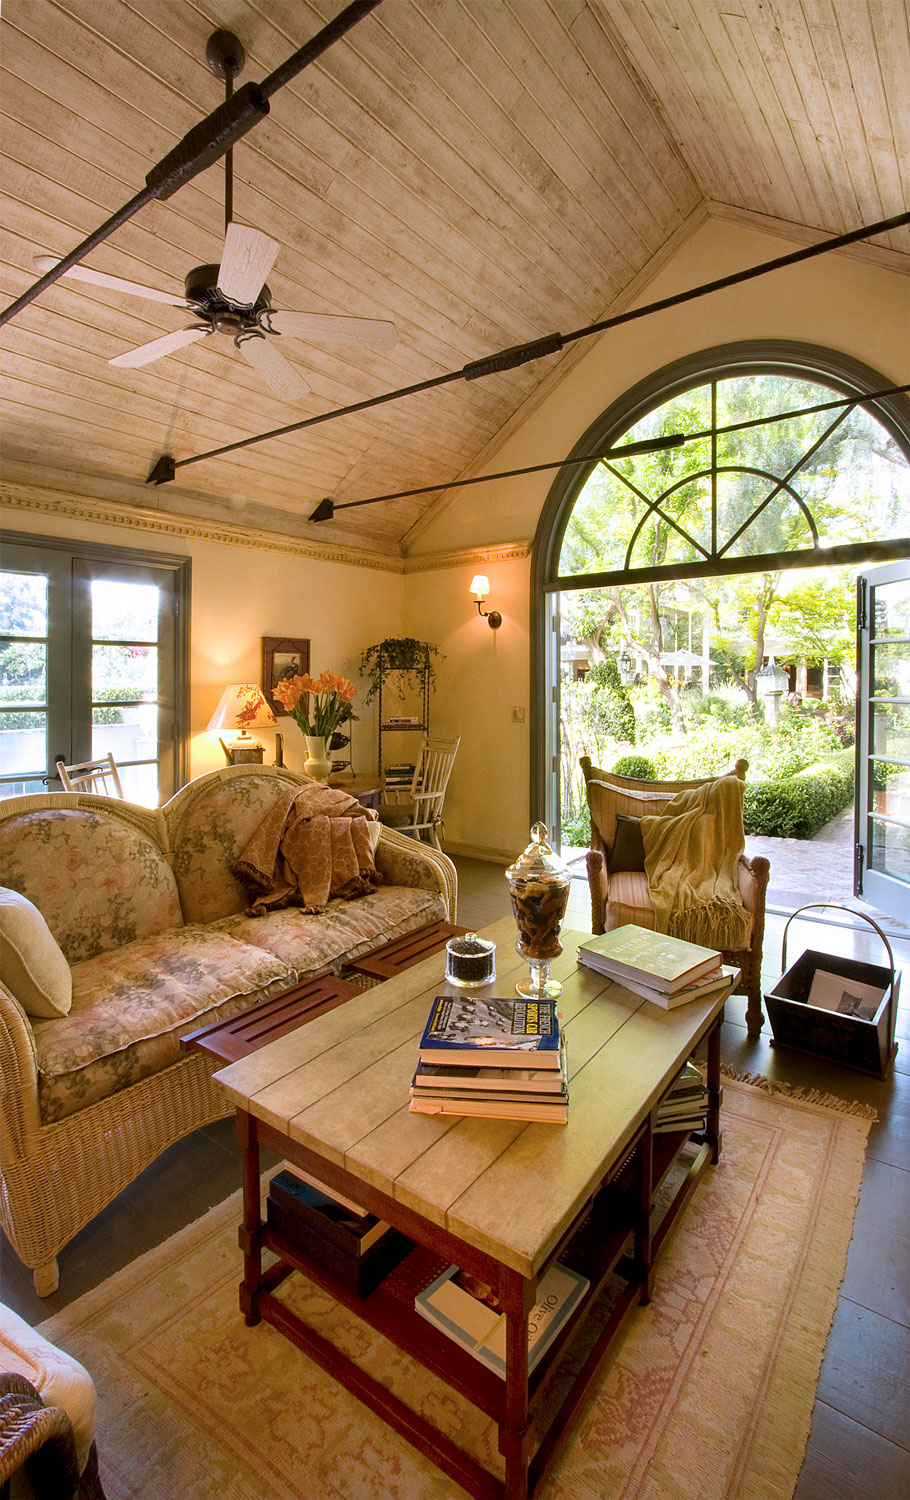 16-pool-house-french-doors-paneled-vaulted-ceiling-gary-drake-general-contractor.jpg